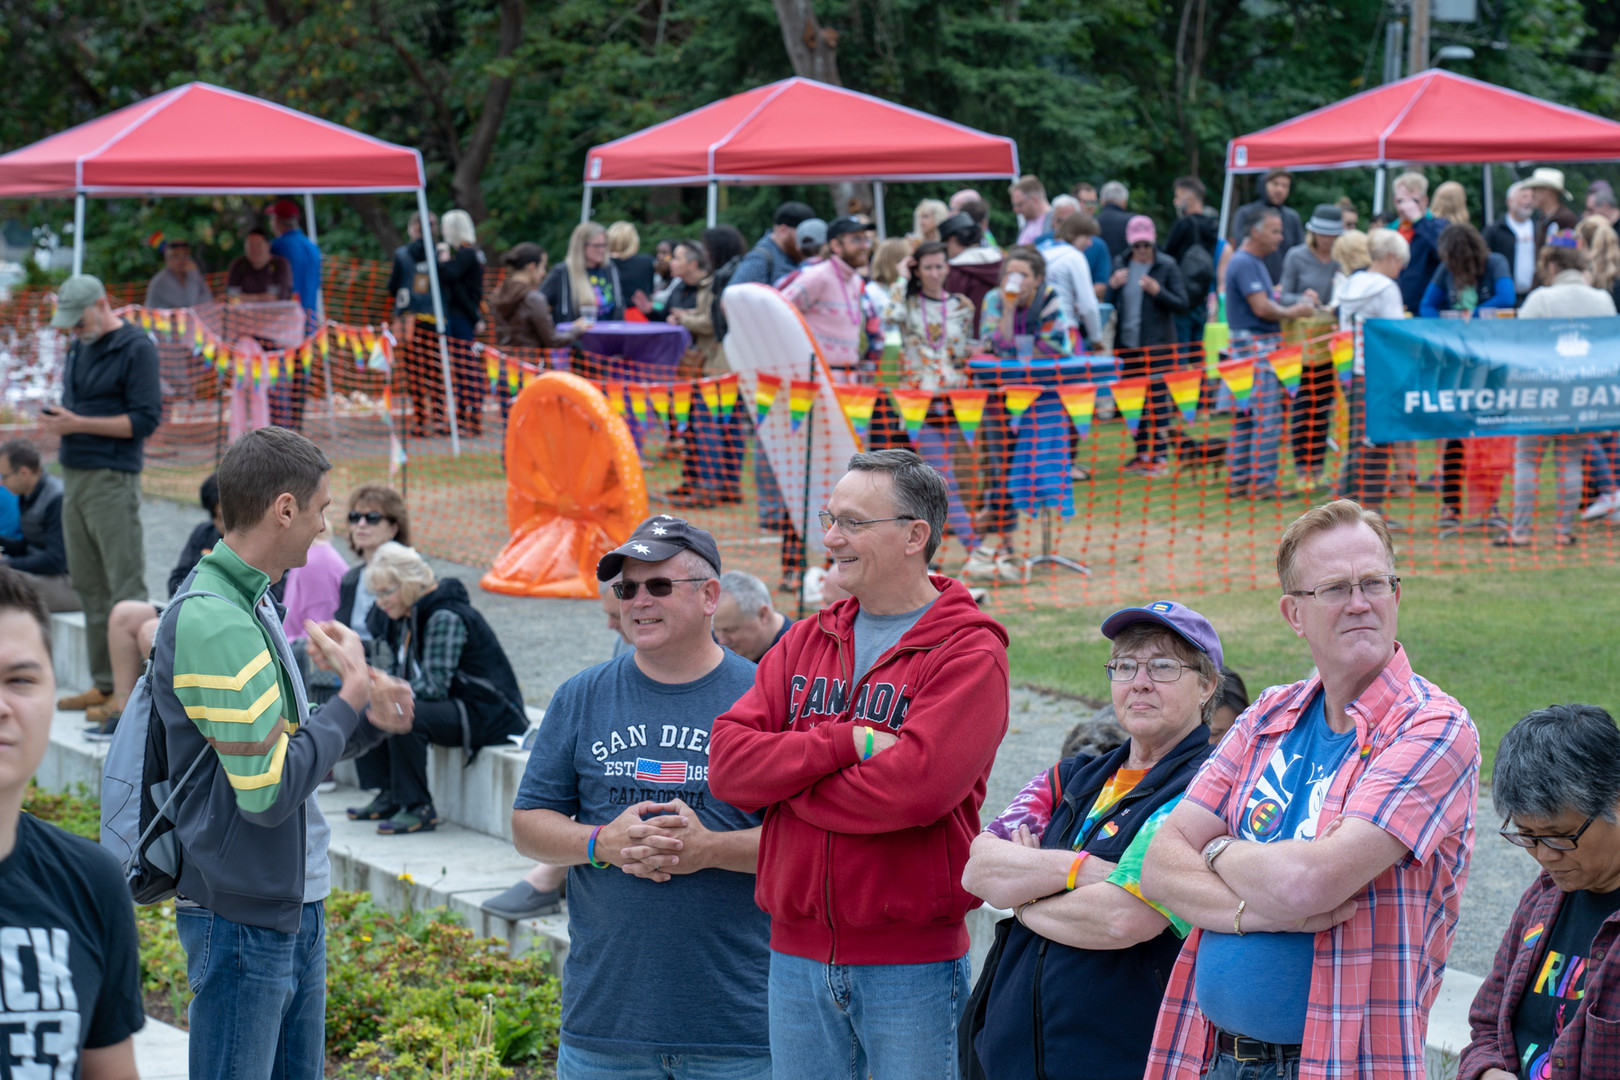 Bainbridge Pride Festival - Beer & Wine Garden Area